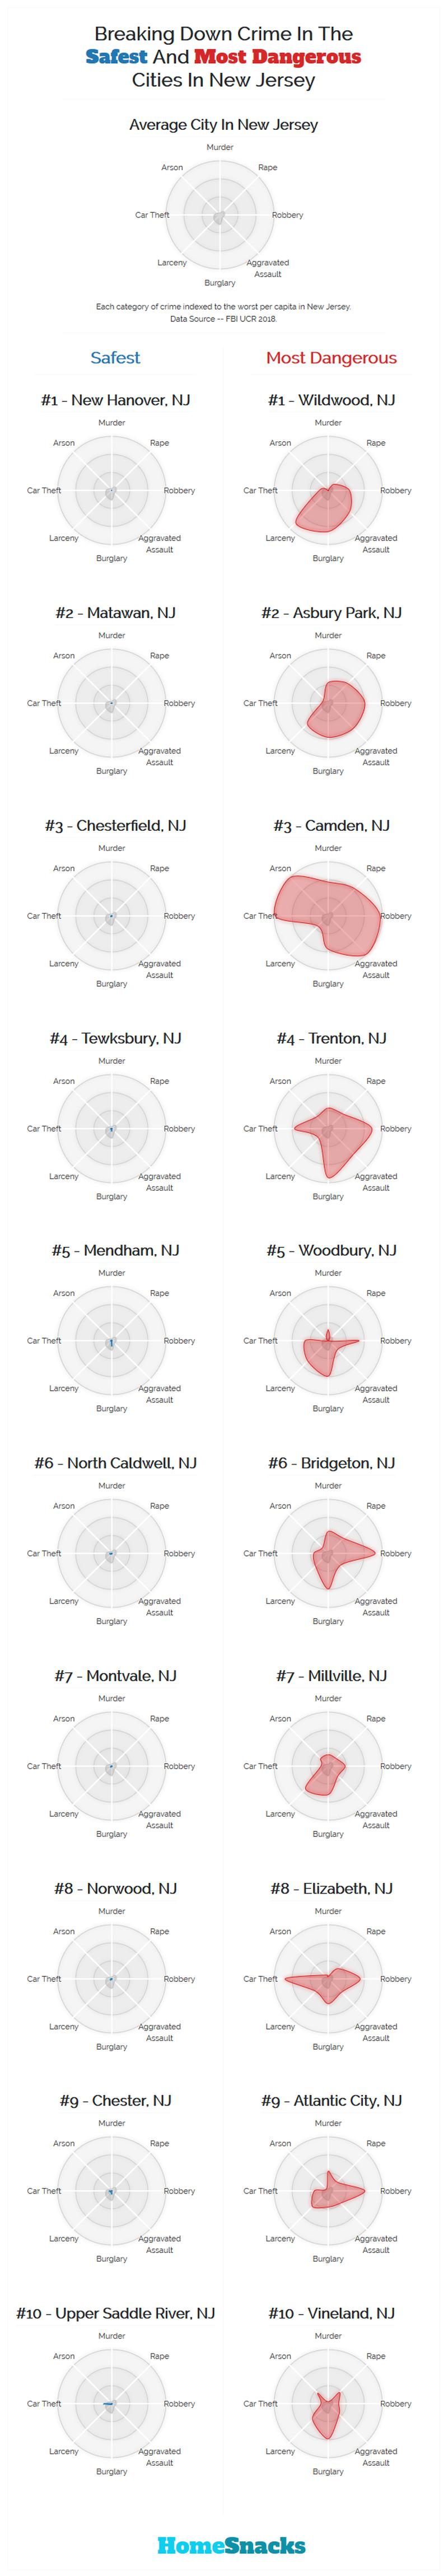 Safest Cities in New Jersey Breakdown